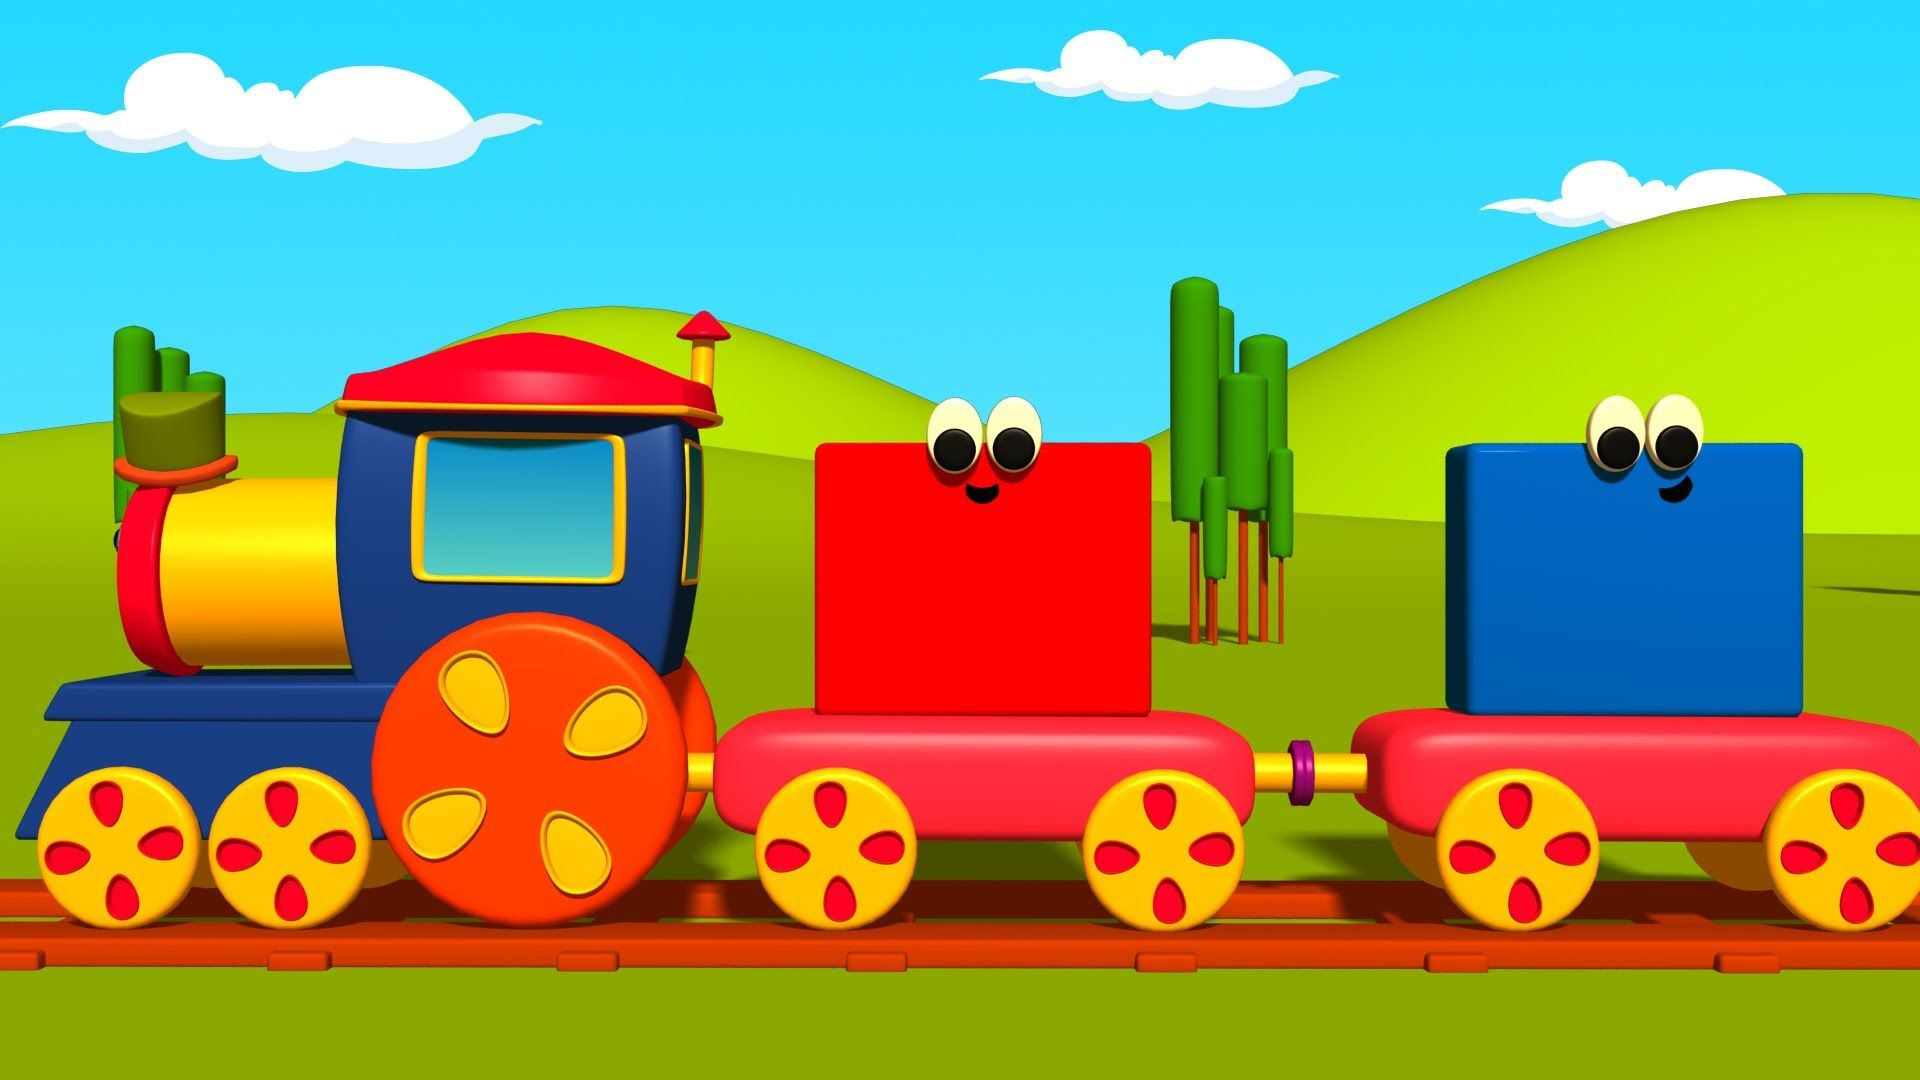 What All Colors Is Bob The Train Made Up Of There S Blue There S